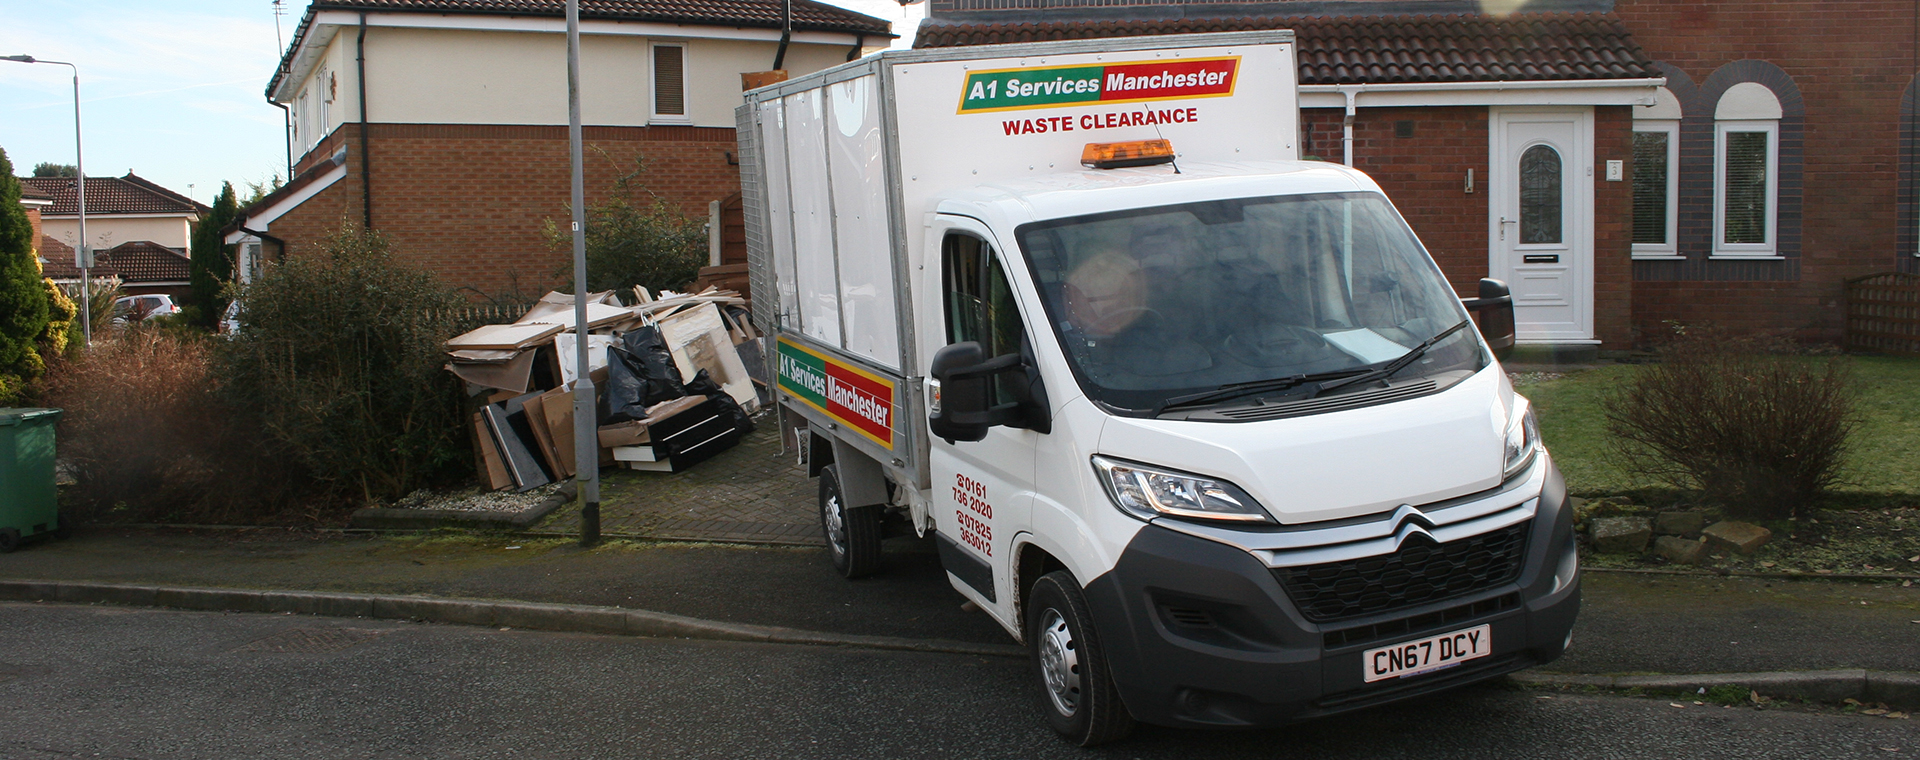 Purpose built waste collection tipper truck